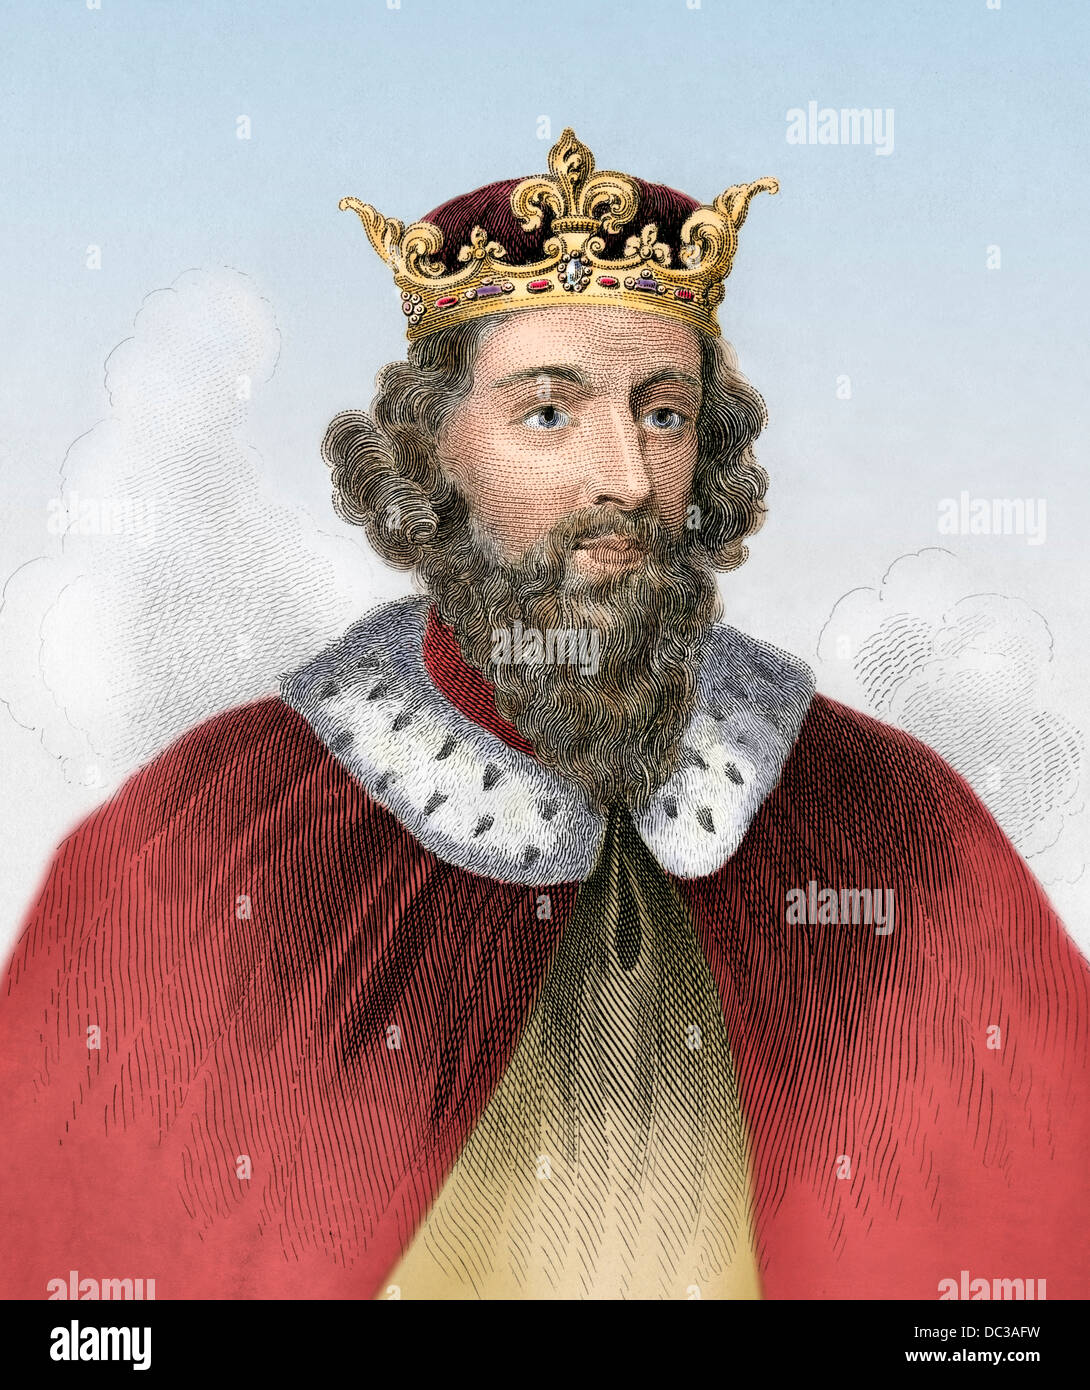 Alfred The Great King Of Wes800s A D Stock Photo